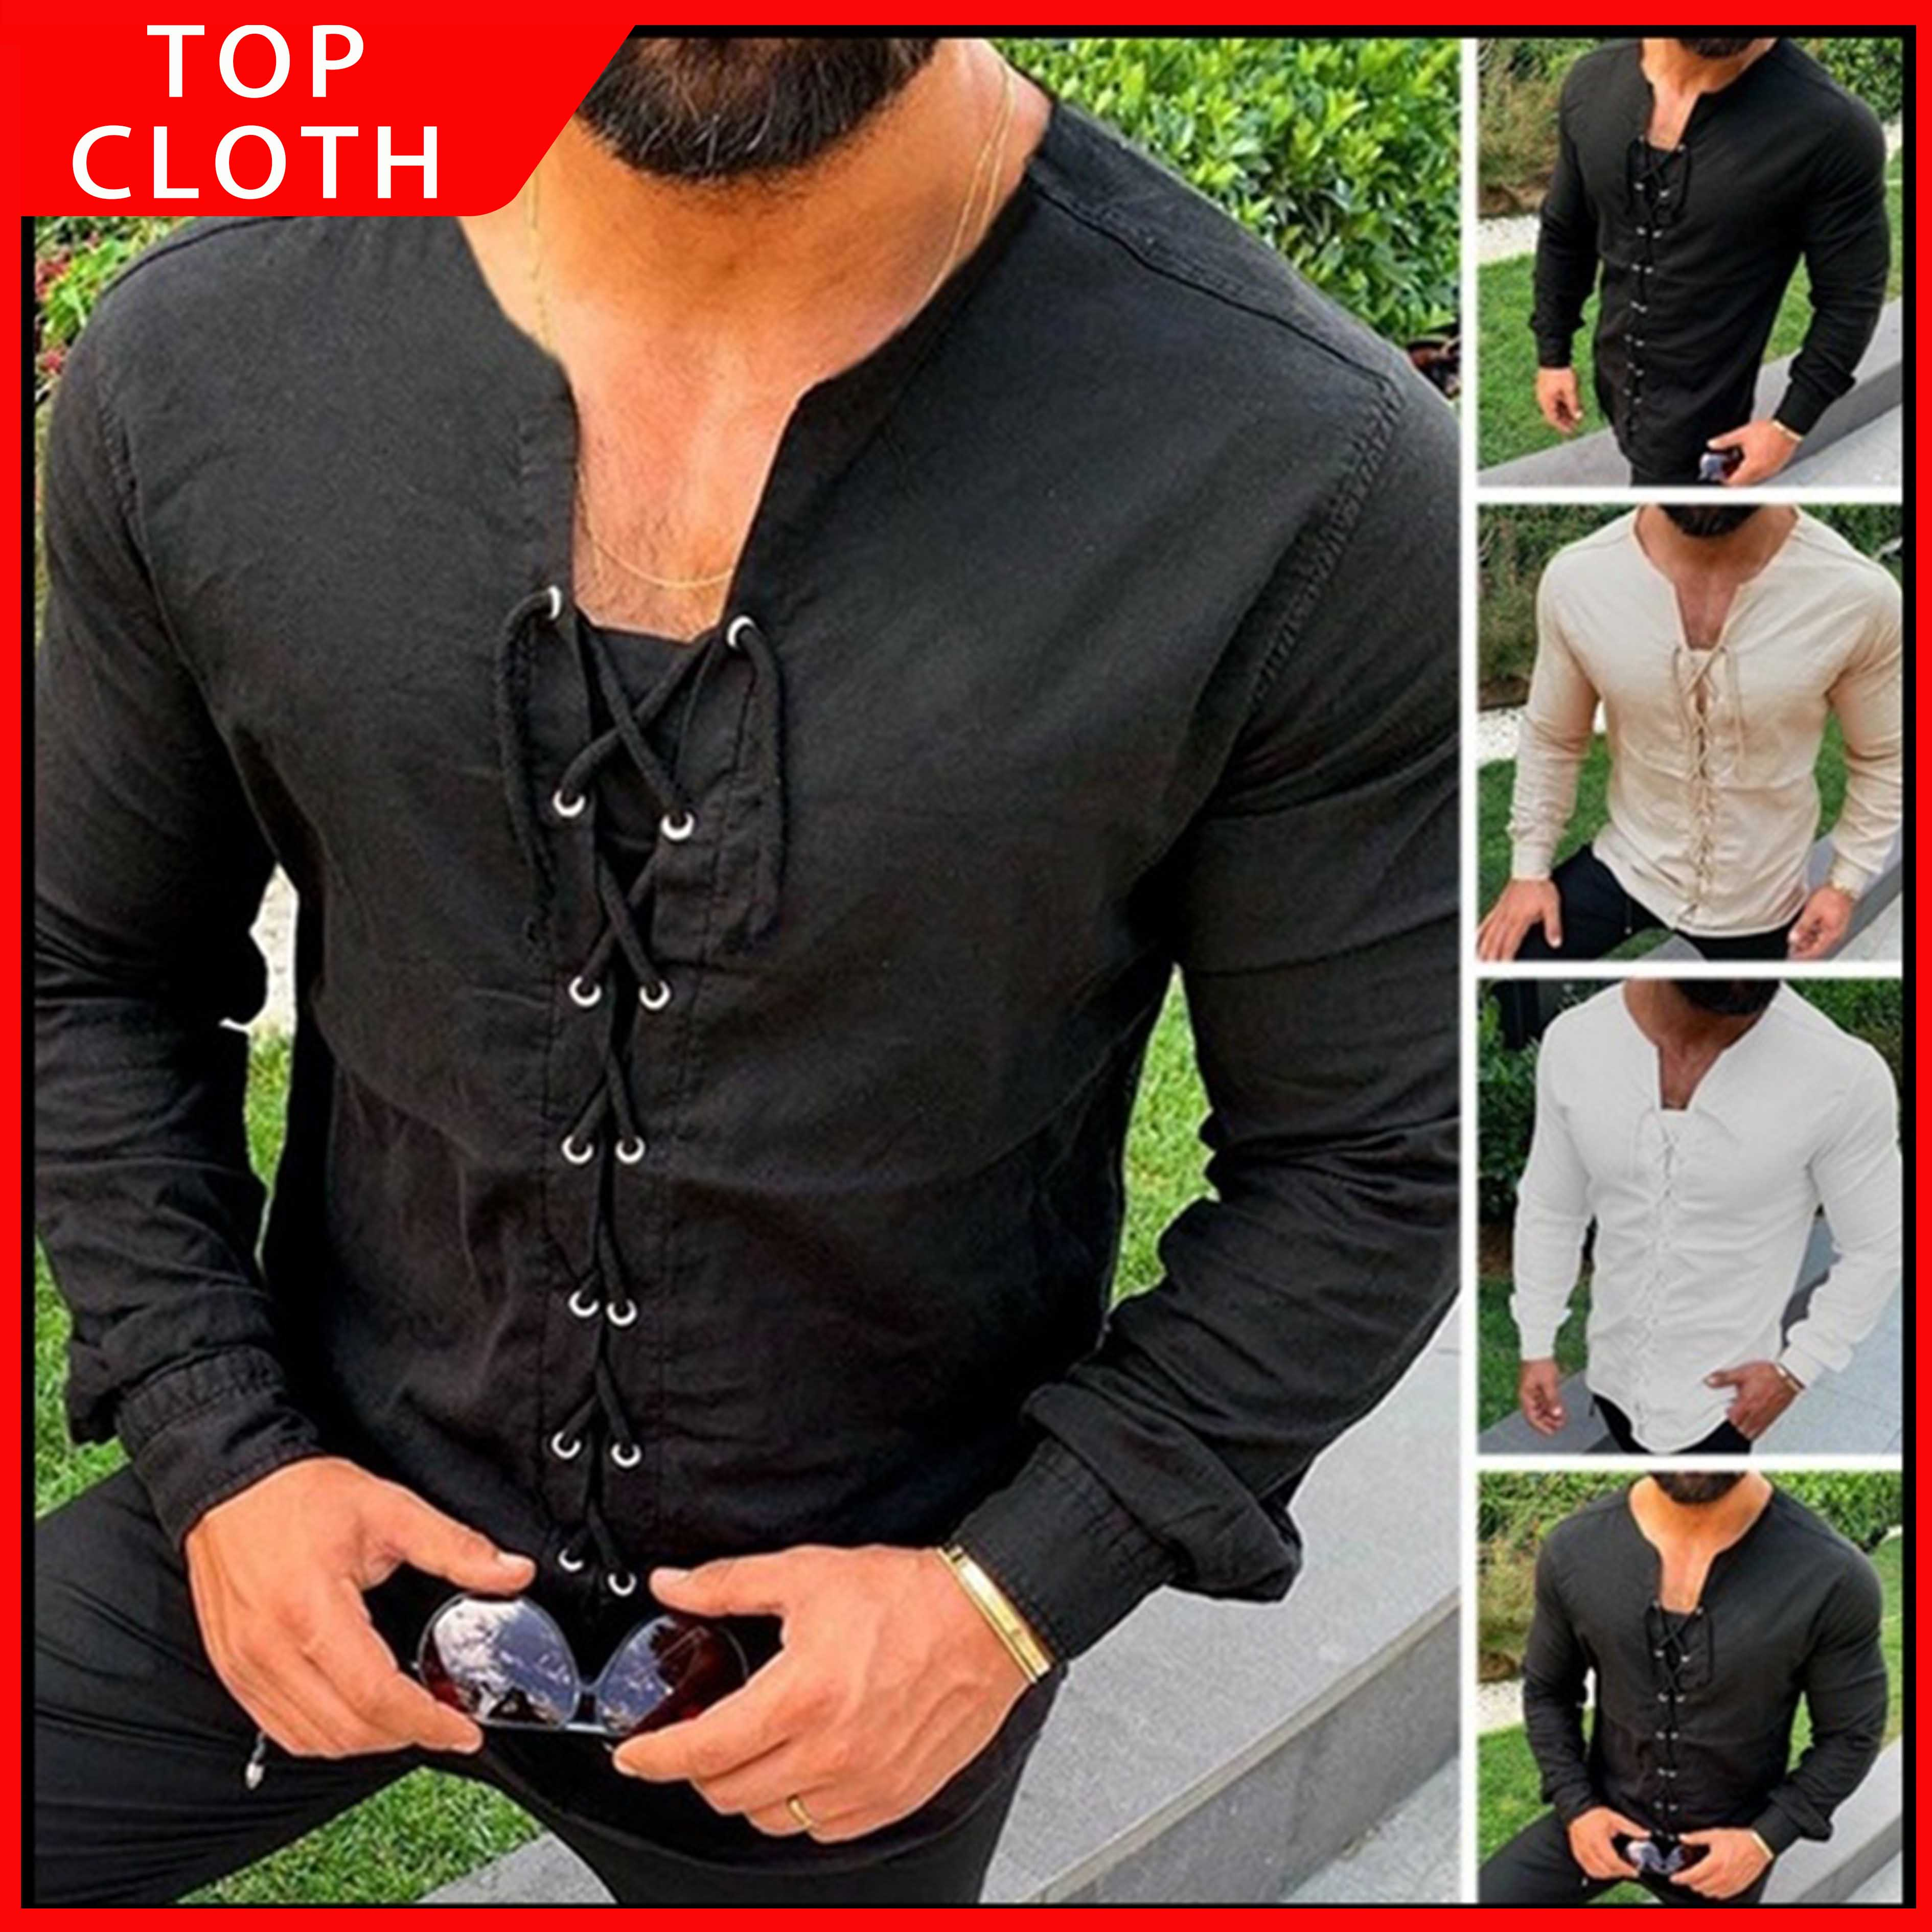 Medieval Lace-up Shirt Men Cotton Shirts Pirate Landlord Knight Warrior Tunic Casual Shirt Male Stage Performance Party Set